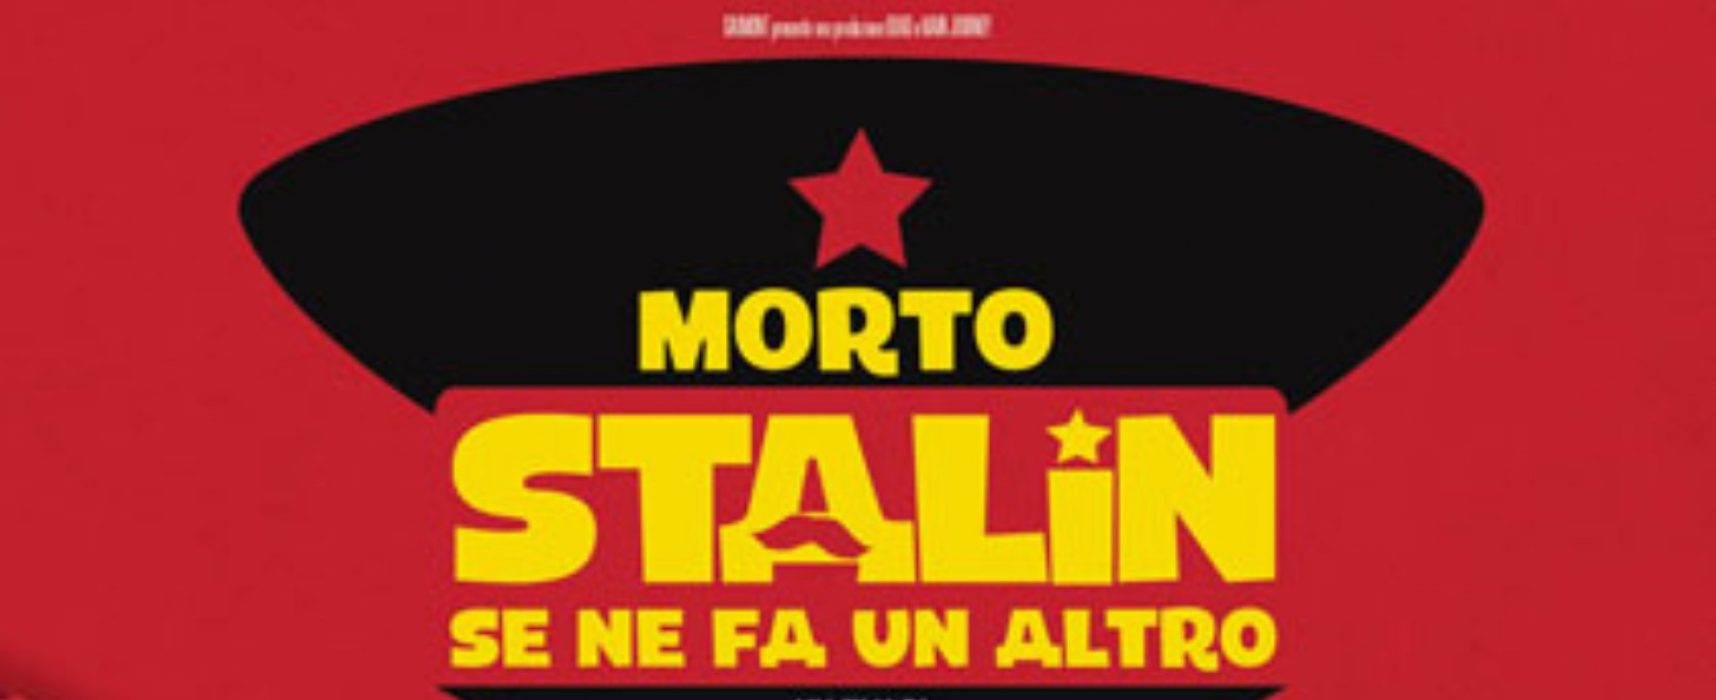 Russia, censurata la commedia satirica su Stalin